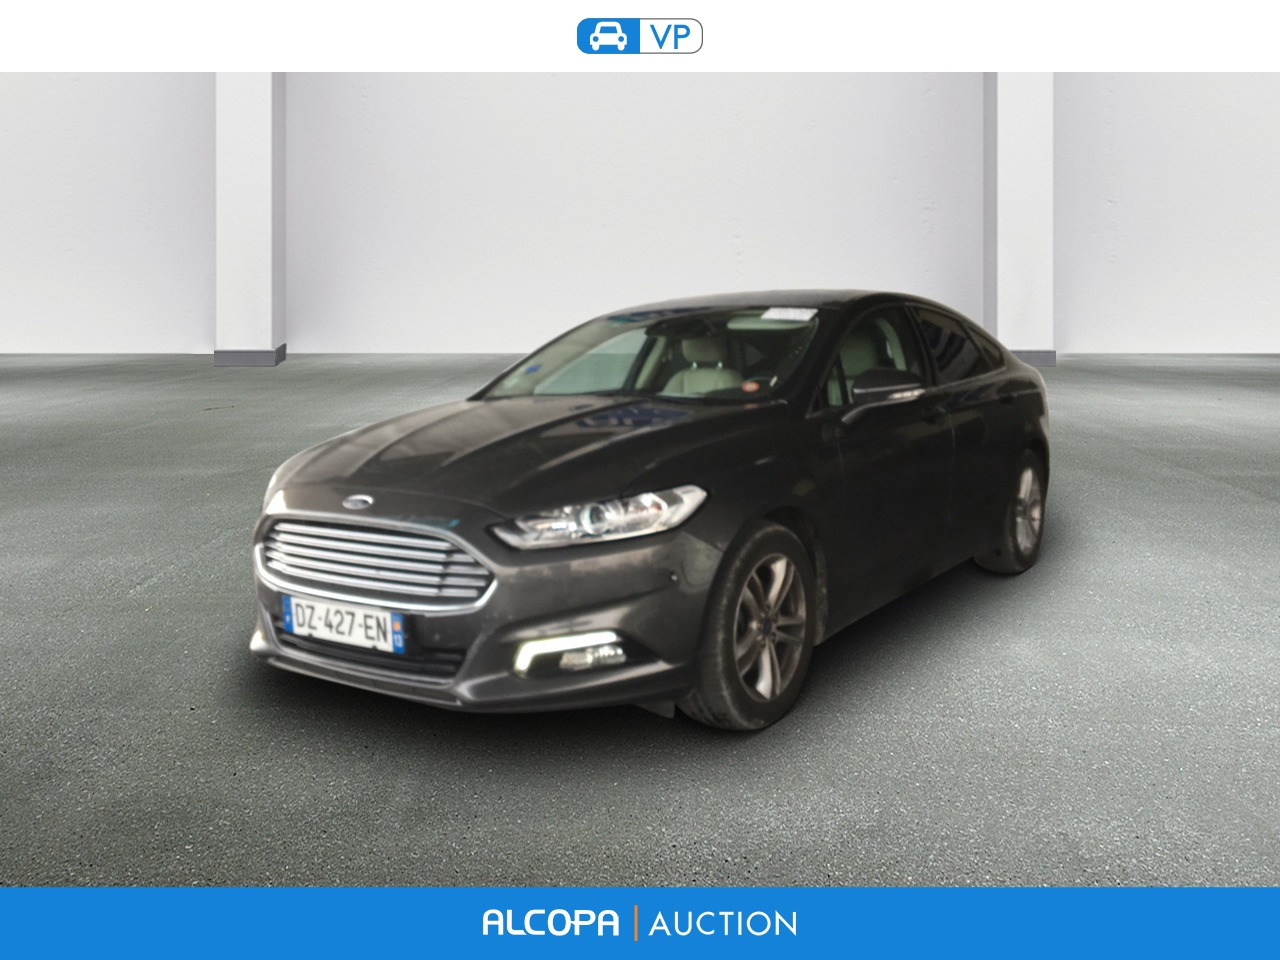 ford mondeo sw 09 2014 mondeo 2 0 tdci 180 titanium powershift bva alcopa auction. Black Bedroom Furniture Sets. Home Design Ideas